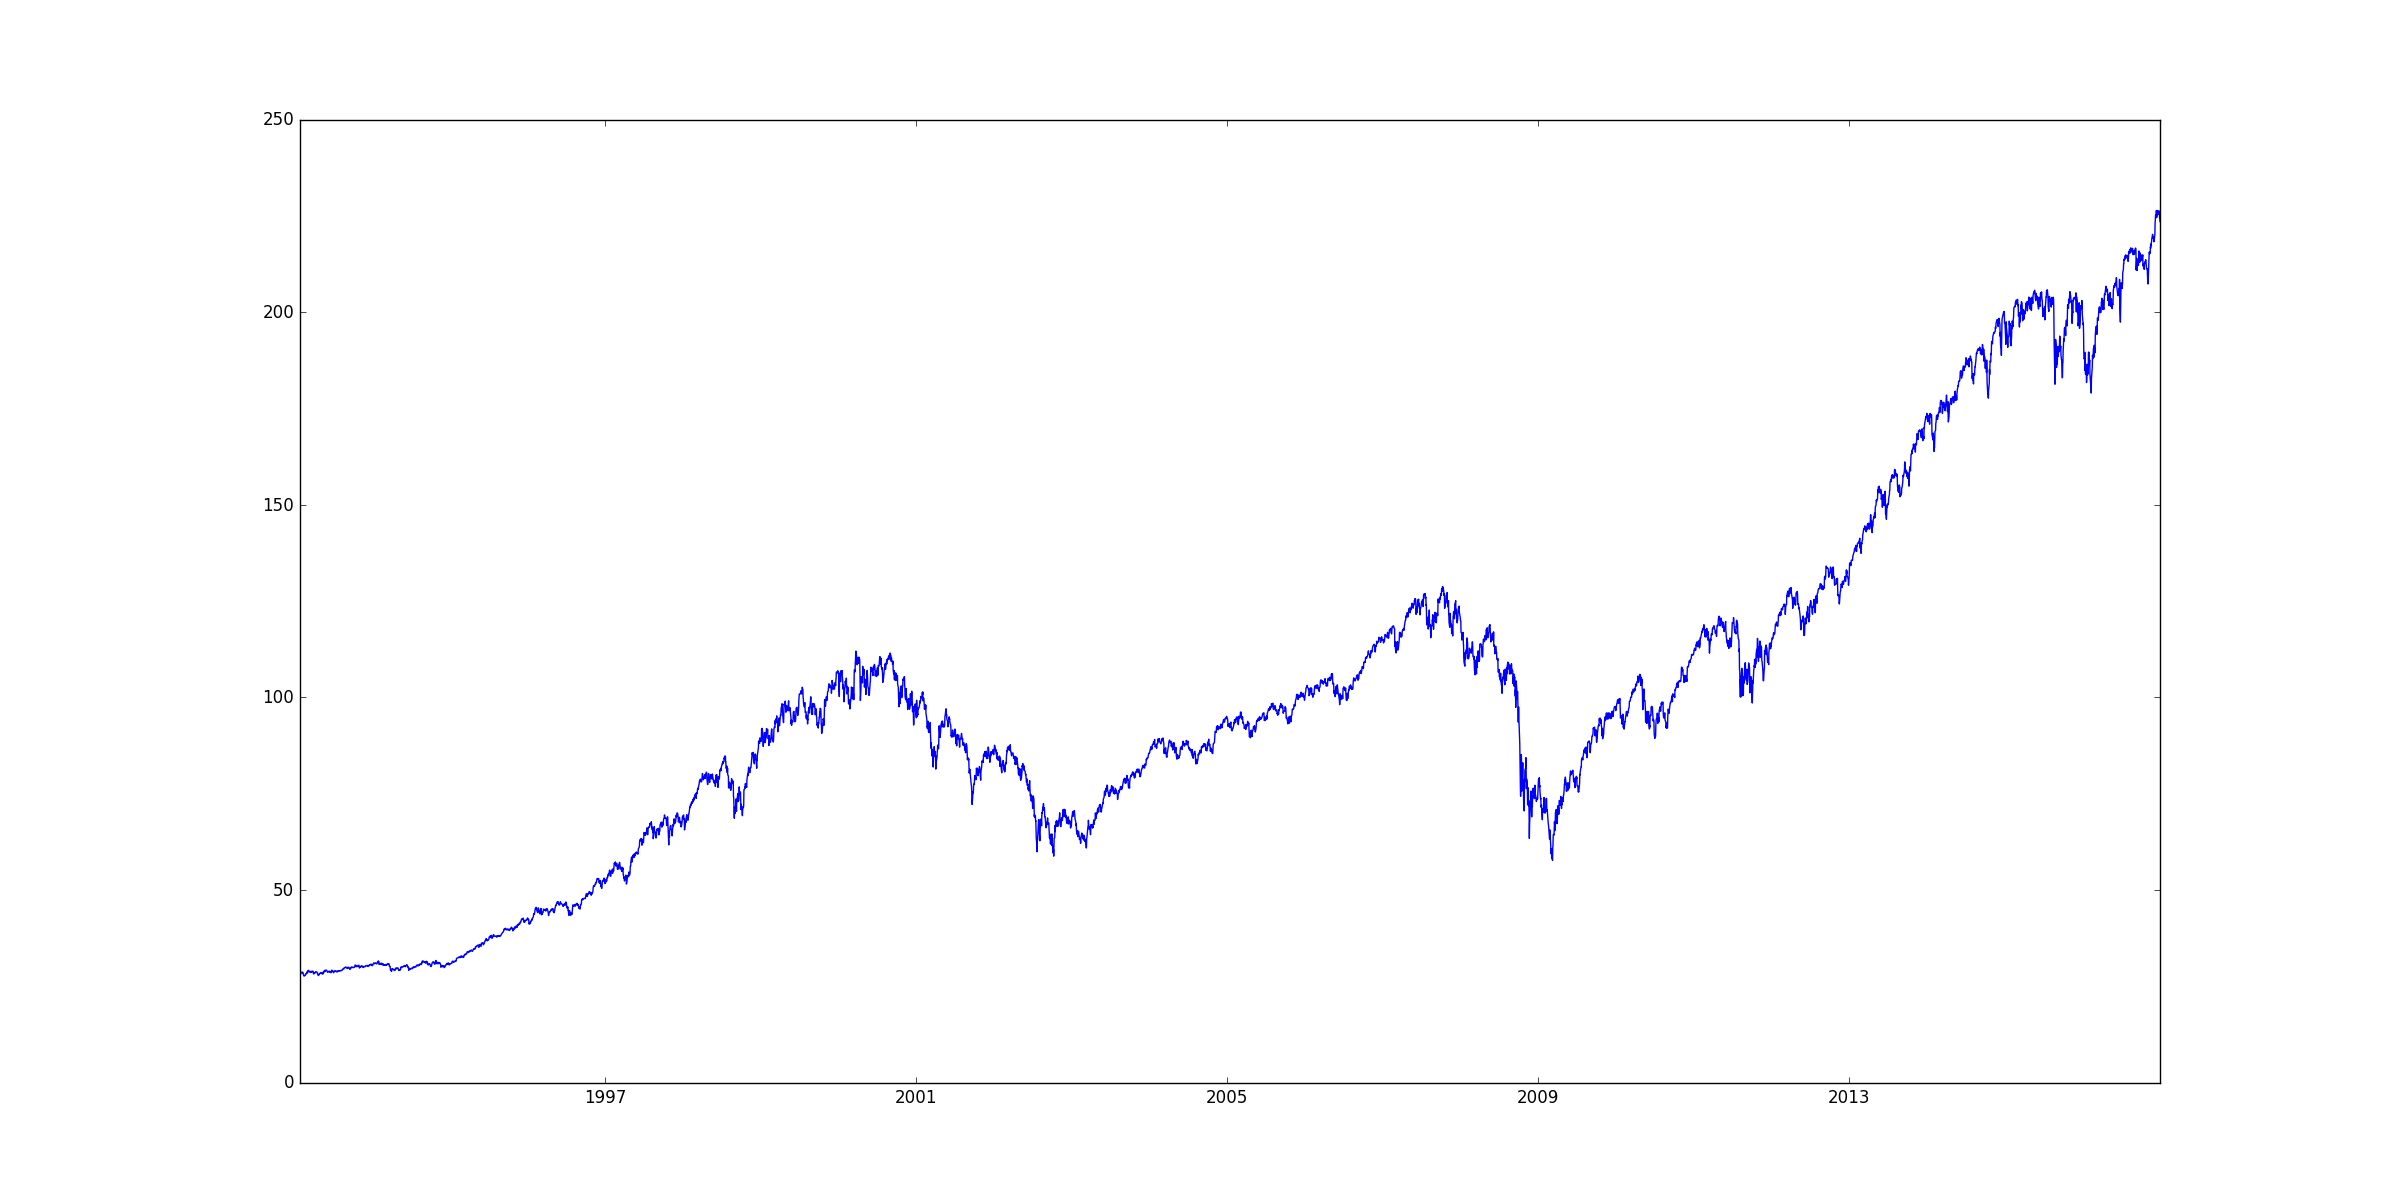 Calculating the Hurst Exponent for Algorithmic Trading